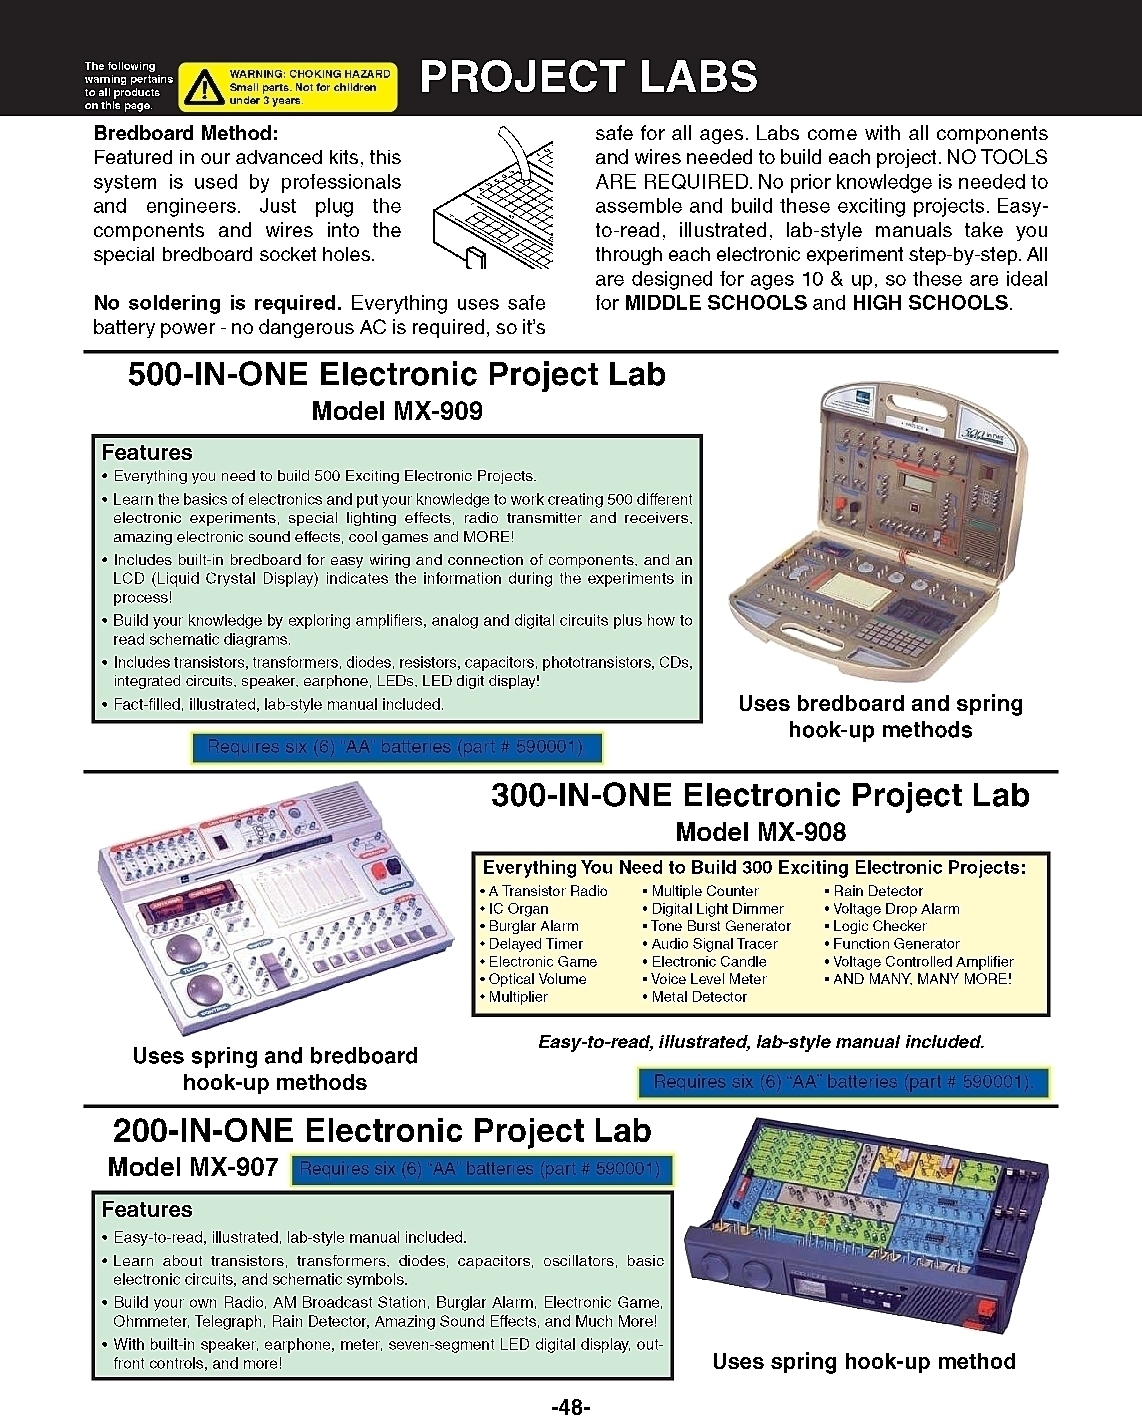 Learning Science Physics Projects Lessons Supplies Applied Sound Effects Generator Circuit 0270catalogpage2may20160008